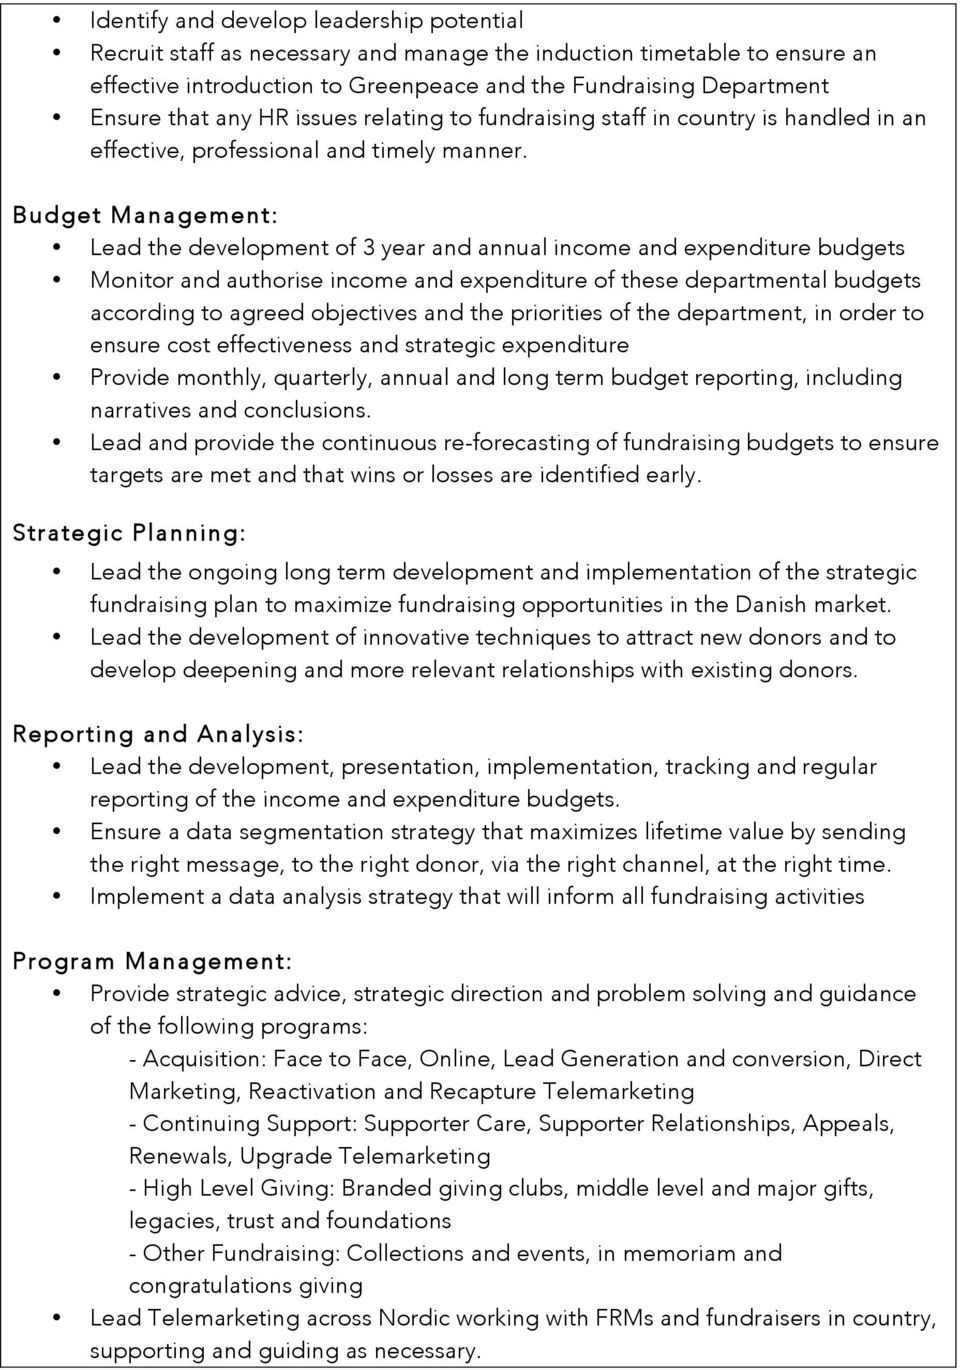 Budget Management: Lead the development of 3 year and annual income and expenditure budgets Monitor and authorise income and expenditure of these departmental budgets according to agreed objectives